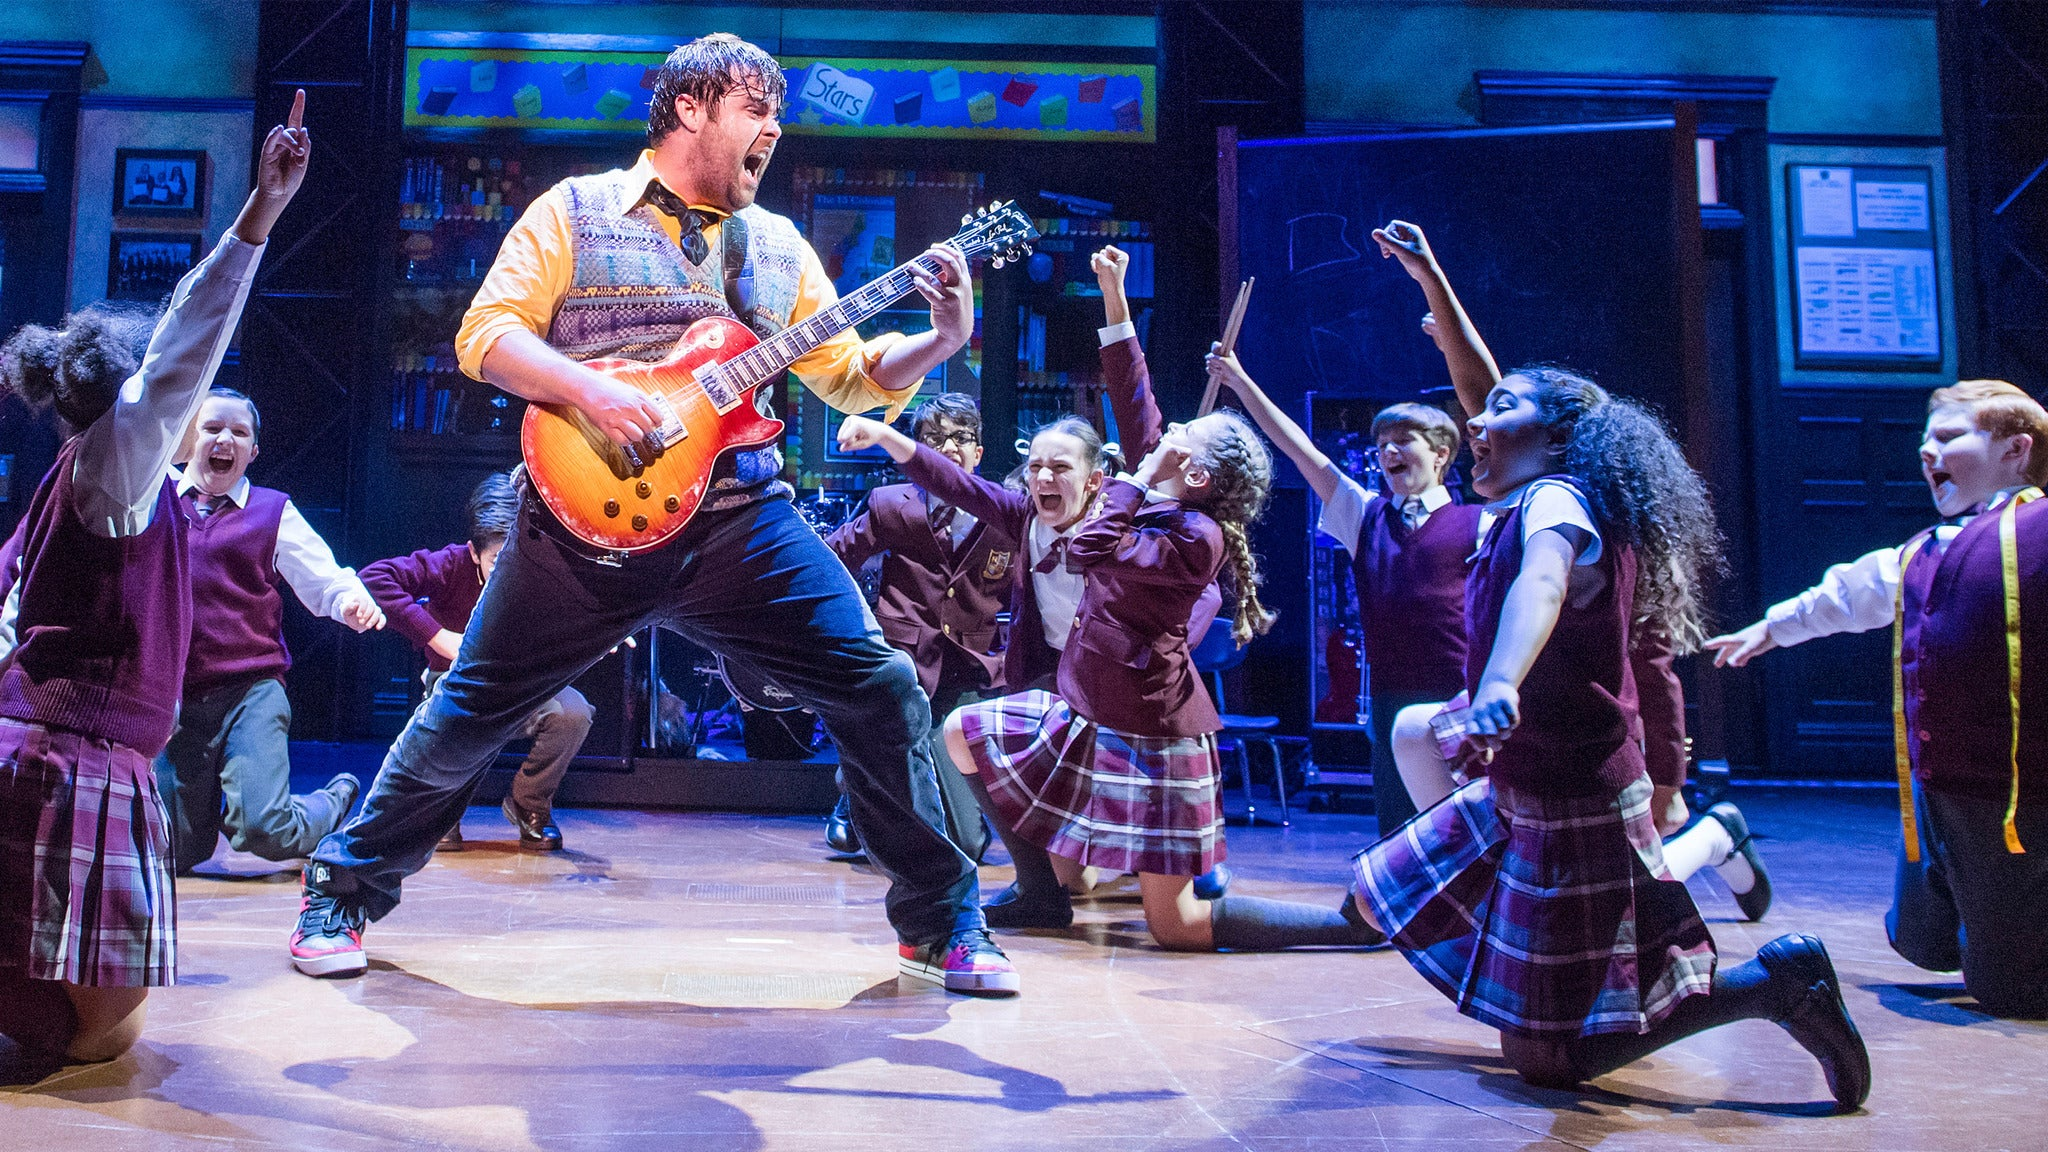 School of Rock The Musical (Touring) - Los Angeles, CA 90028